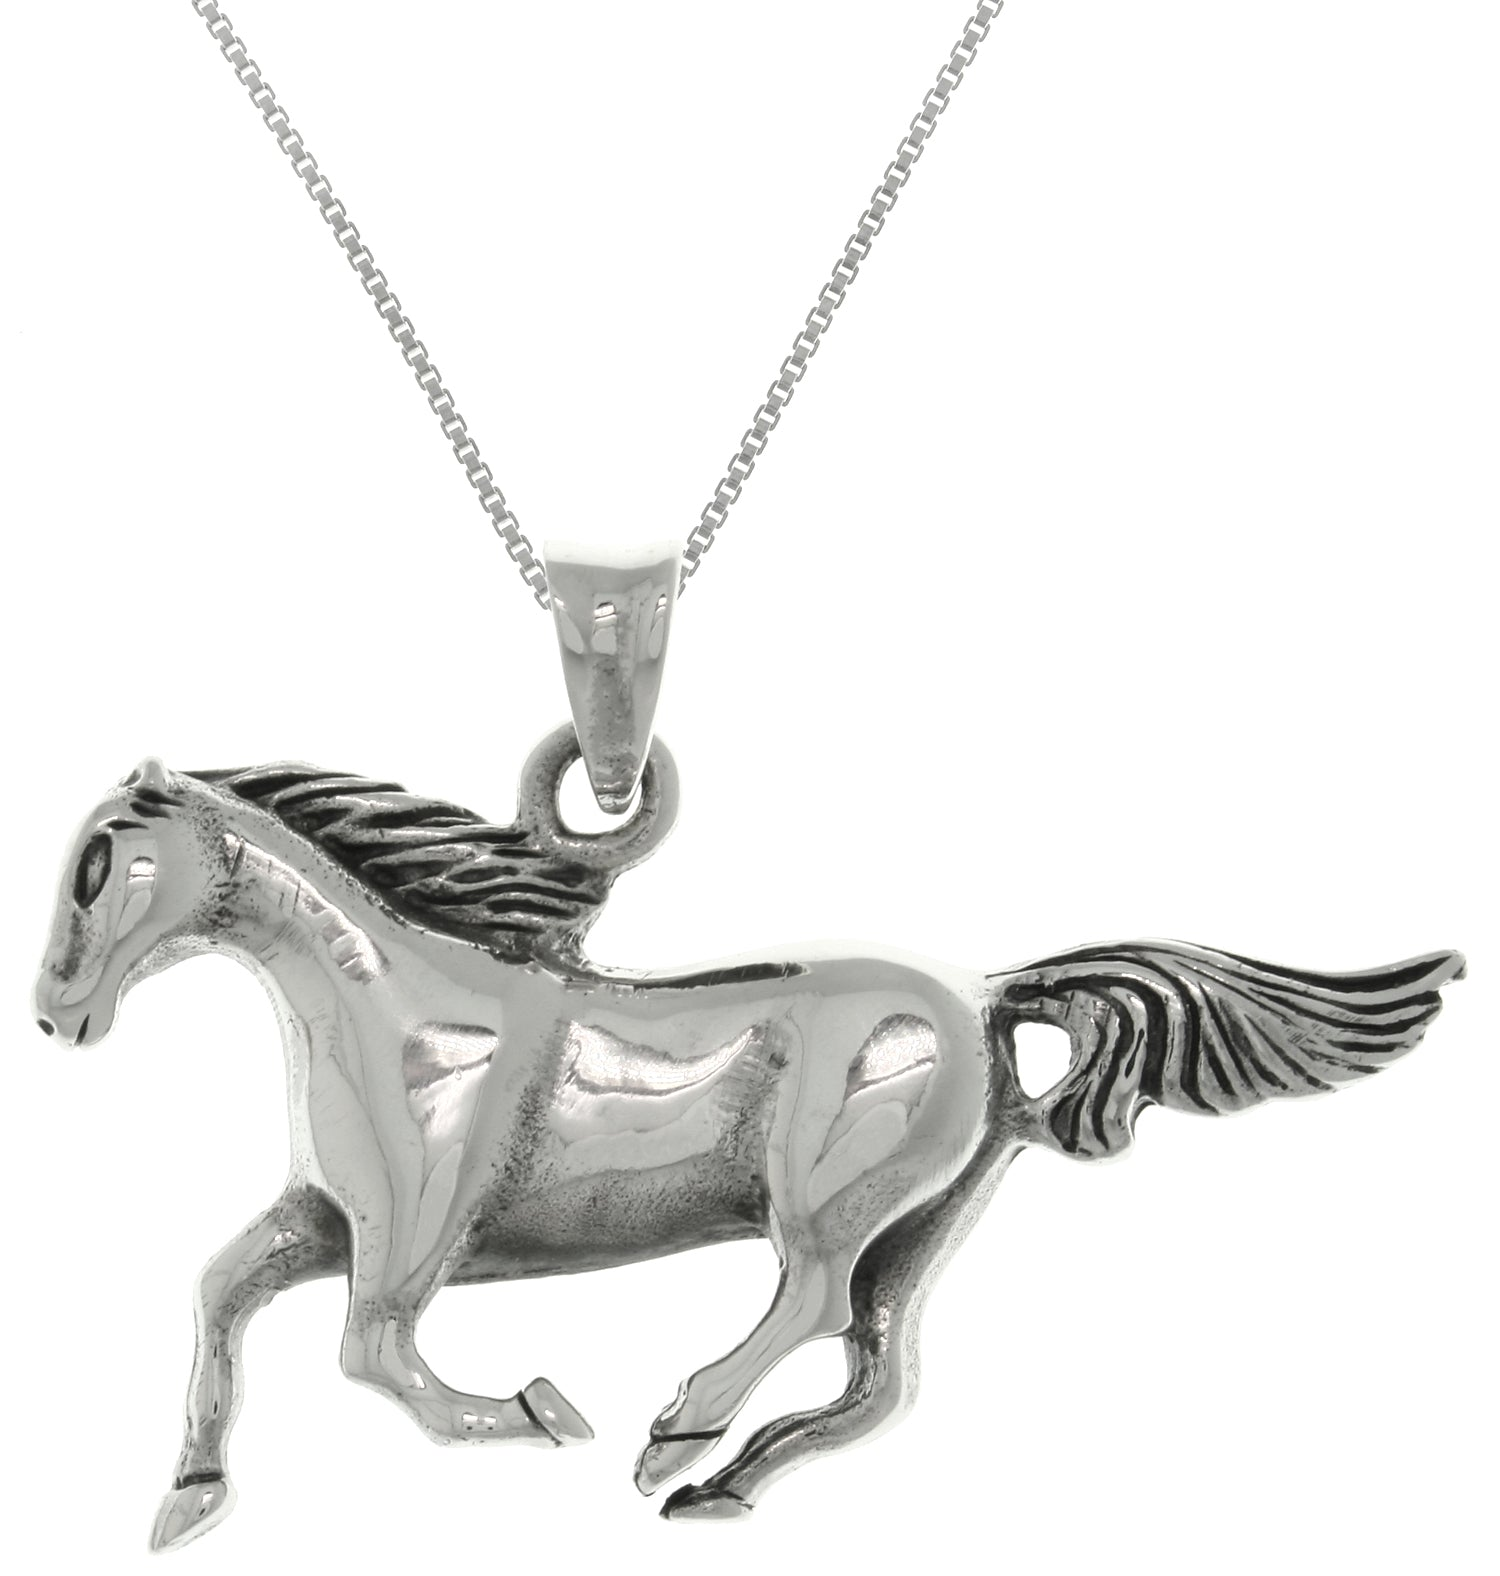 Jewelry Trends Sterling Silver Running Horse Mustang Pendant on 18 Inch Box Chain Necklace